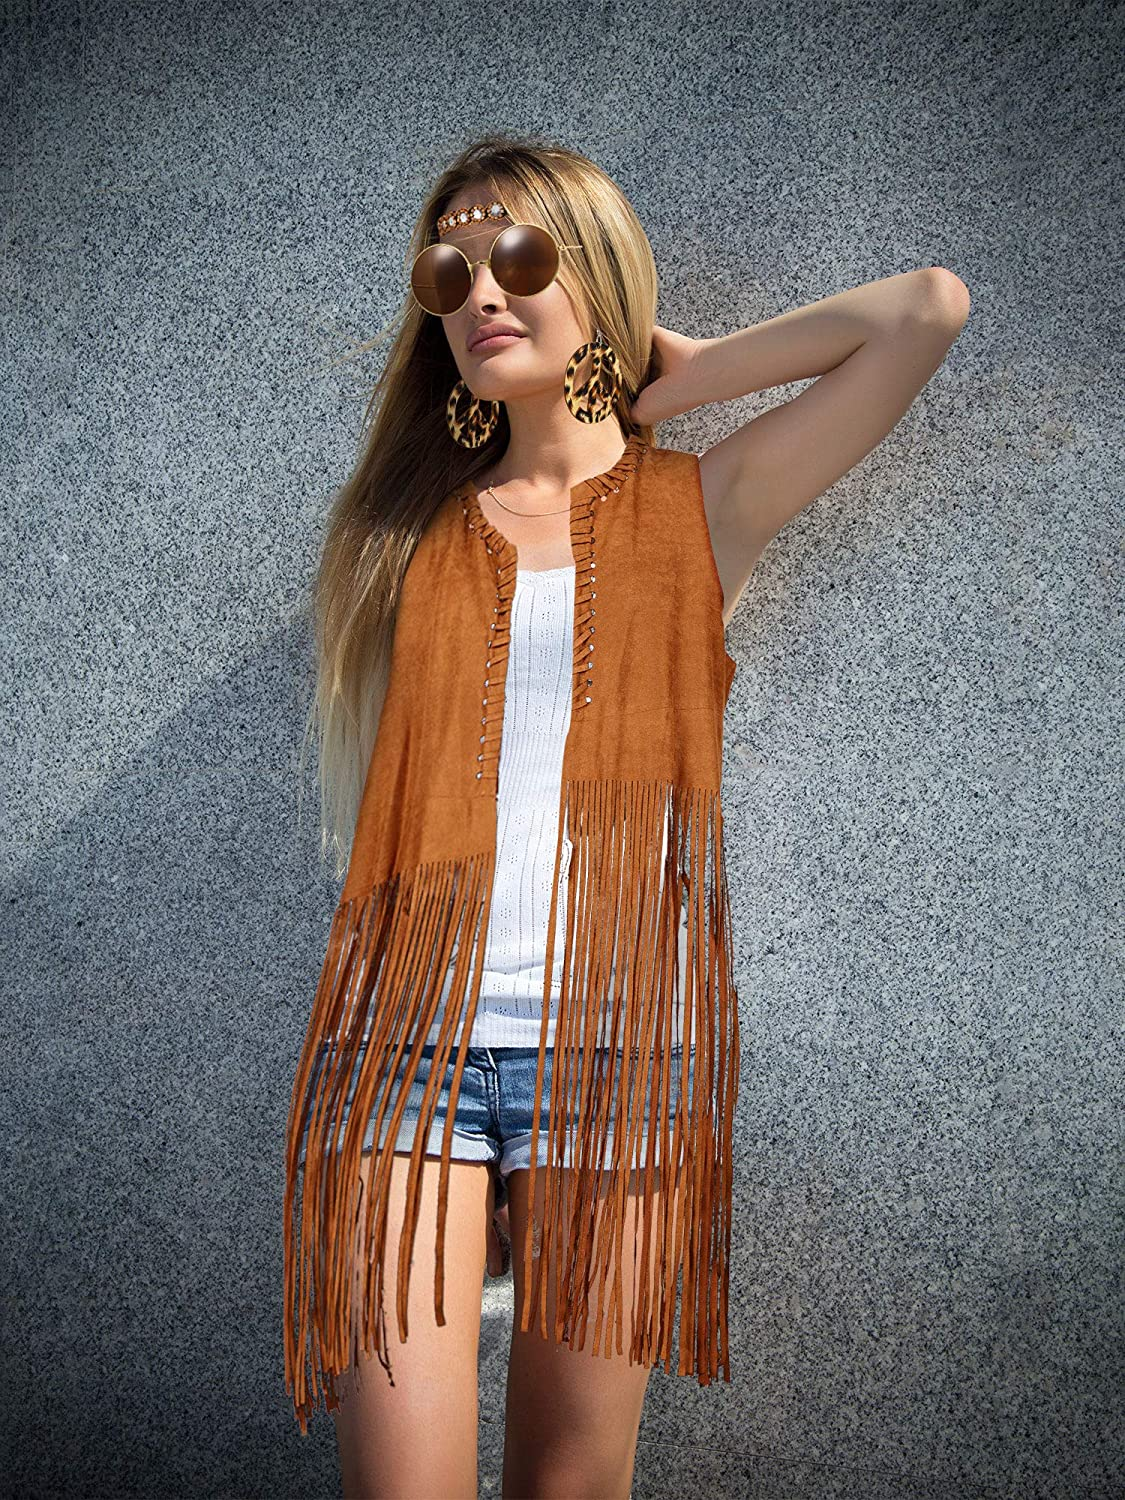 70s Jackets, Furs, Vests, Ponchos 4 Pieces Women Hippie Costume Set Fringe Vest Faux Suede Tassels Vest $29.99 AT vintagedancer.com